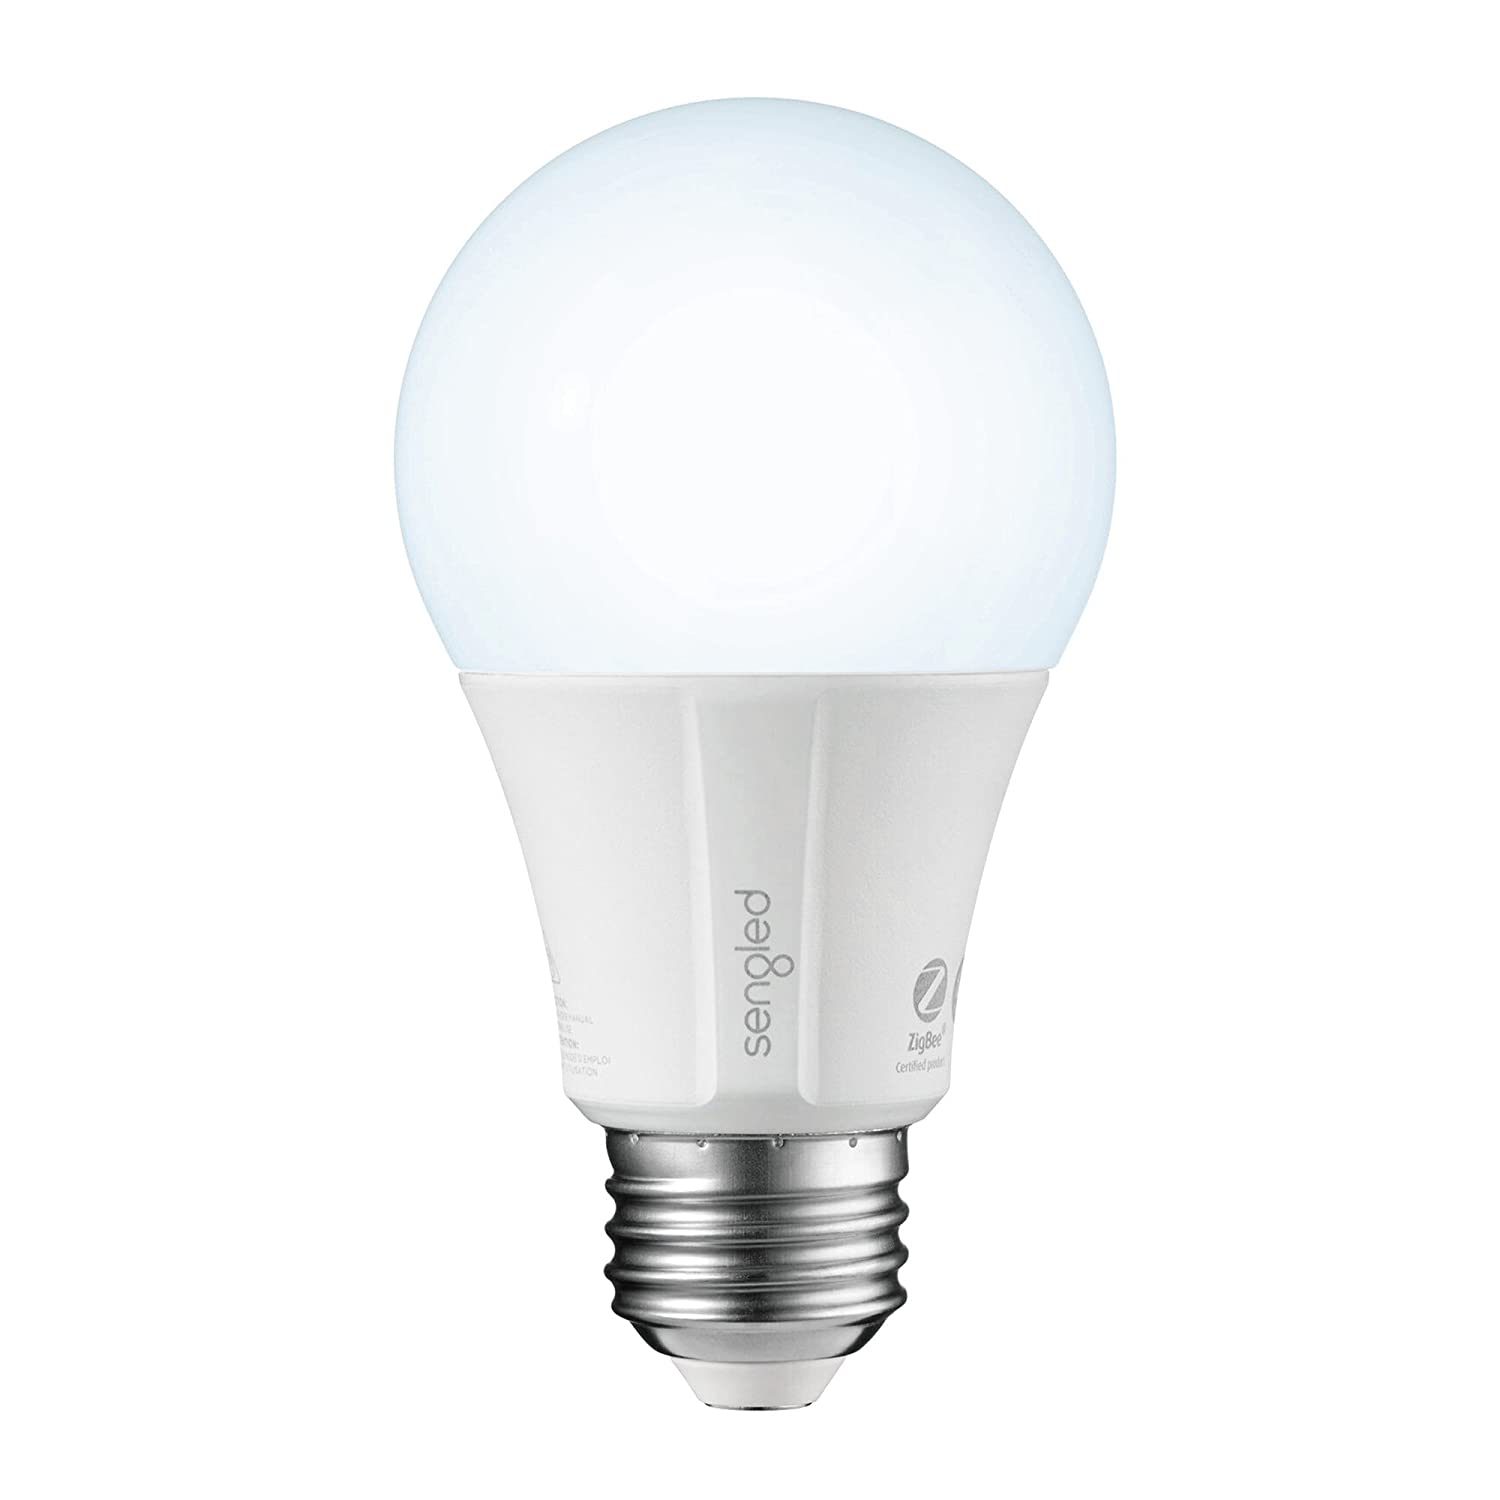 Element Classic by Sengled - A19 Soft White 2700K Smart LED Bulb (Hub Required), Works with Alexa, Google Assistant, Echo Plus & SmartThings - 1 Pack E11-G13W energy efficient track energy usage app controlled connected